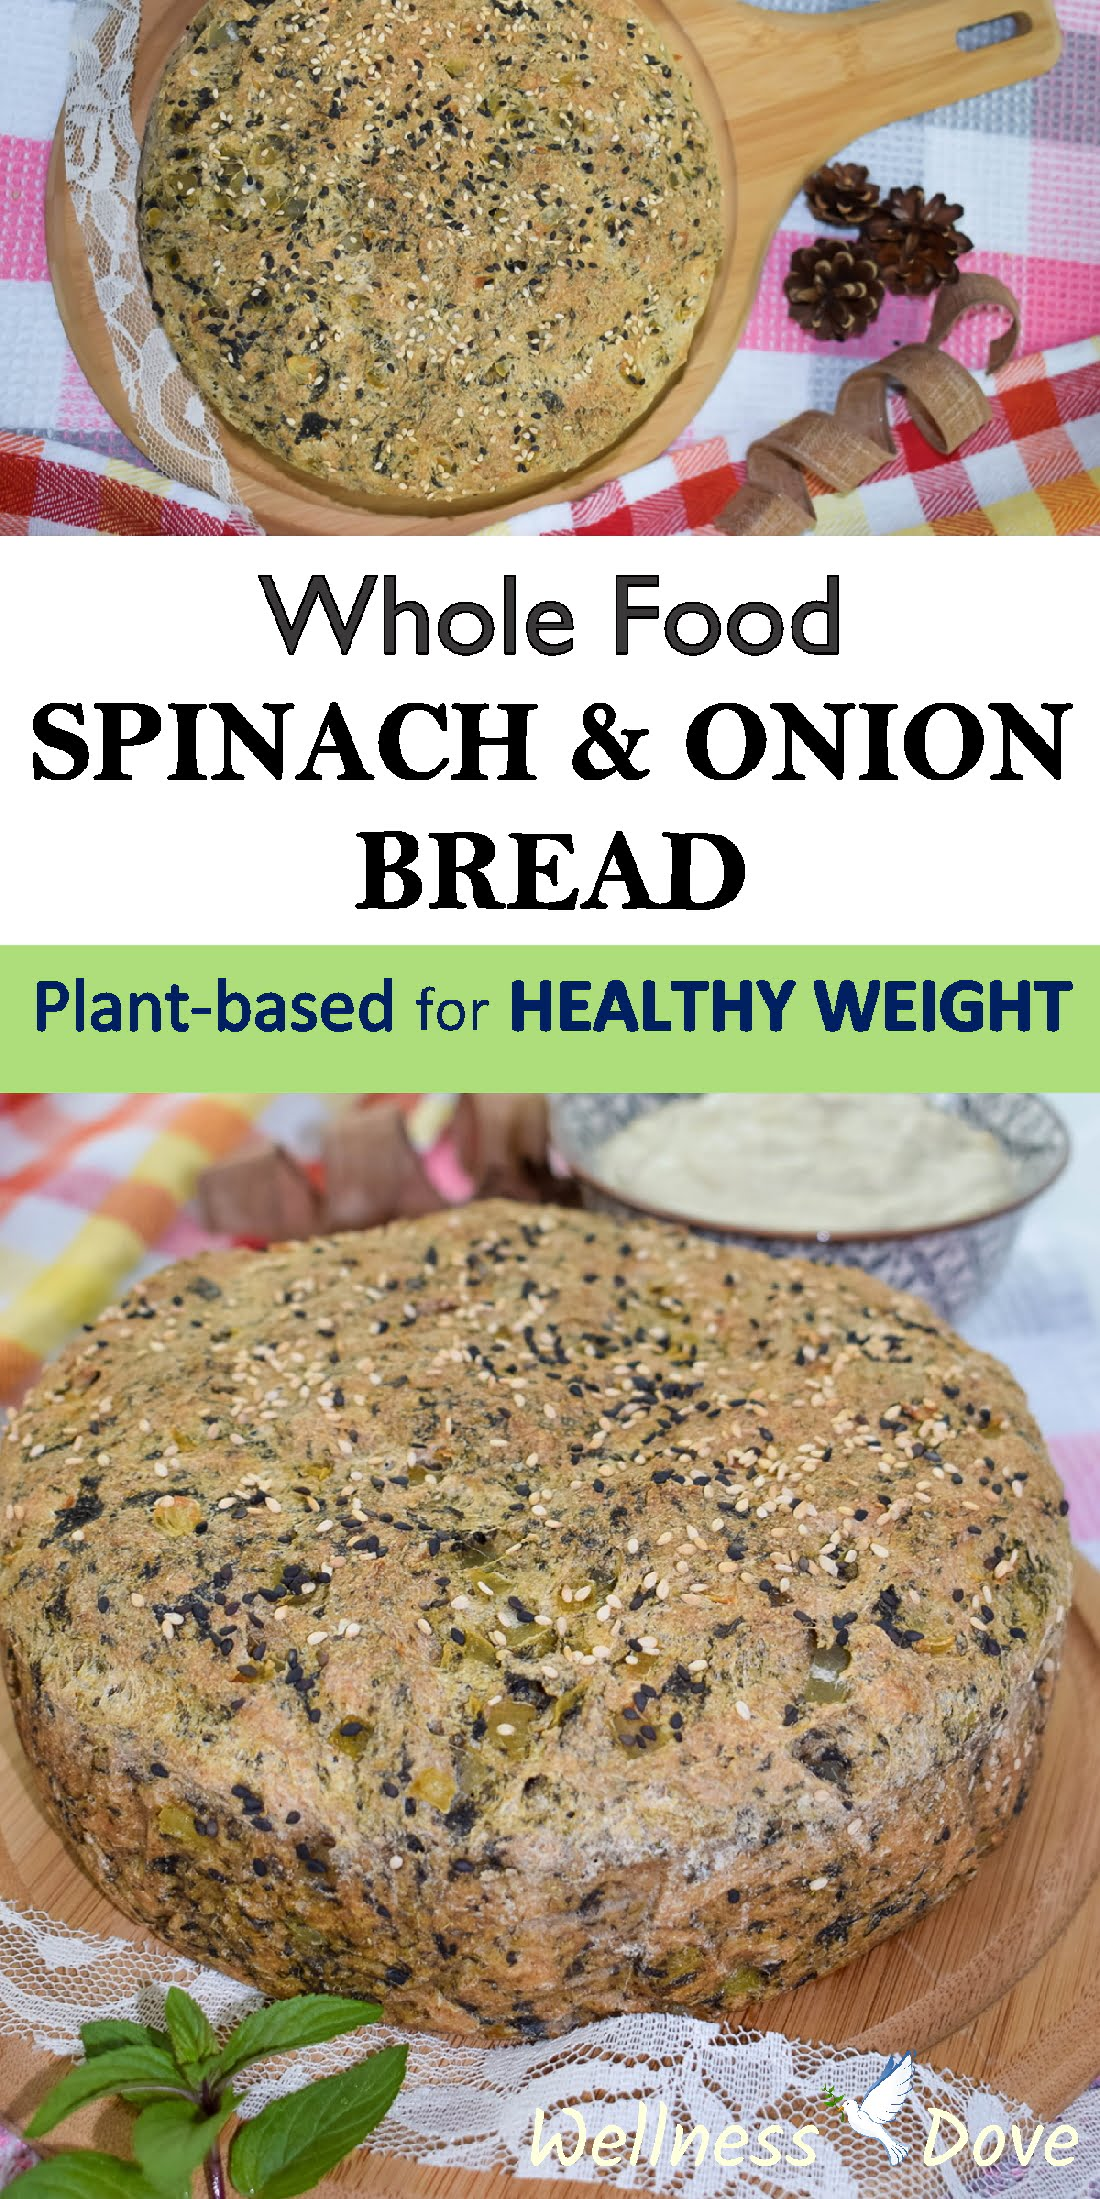 A delicious whole food, oil-free, vegan bread recipe. Really fresh and juicy bread that smells really appetizing. Easy to prepare as well.